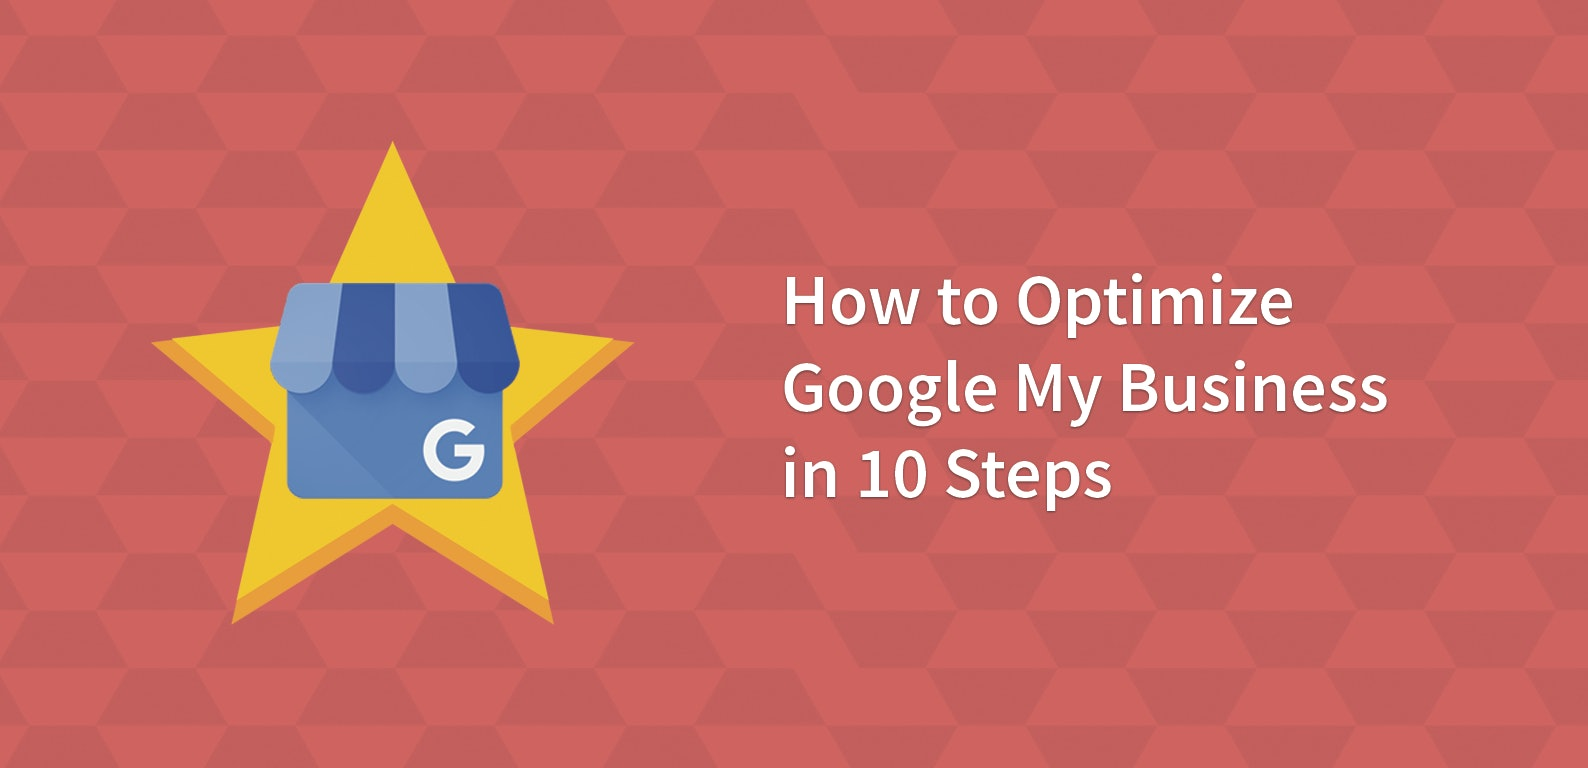 How to Optimize Google My Business in 10 Steps